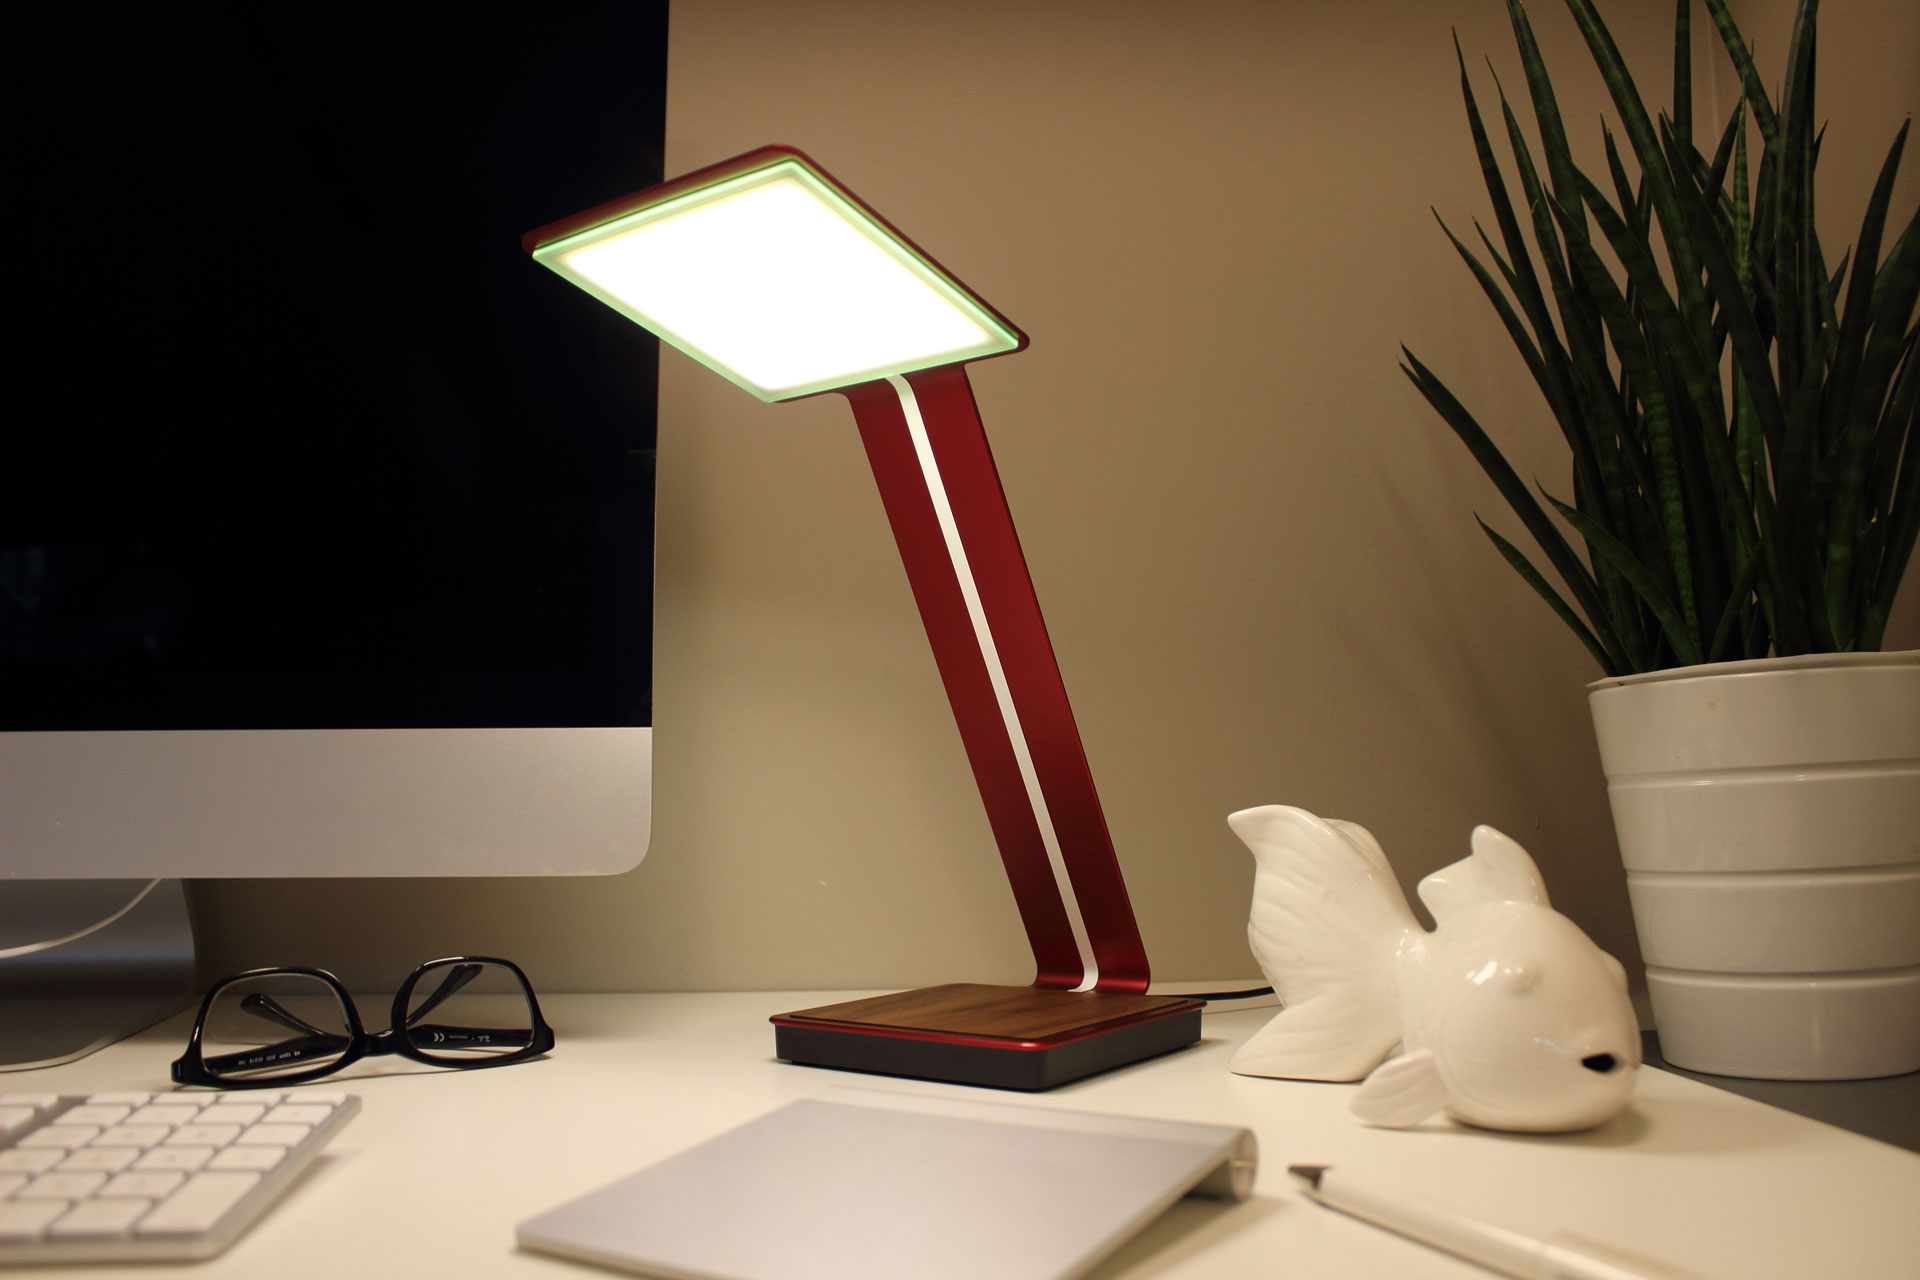 Oled Beleuchtung Oled Lampe